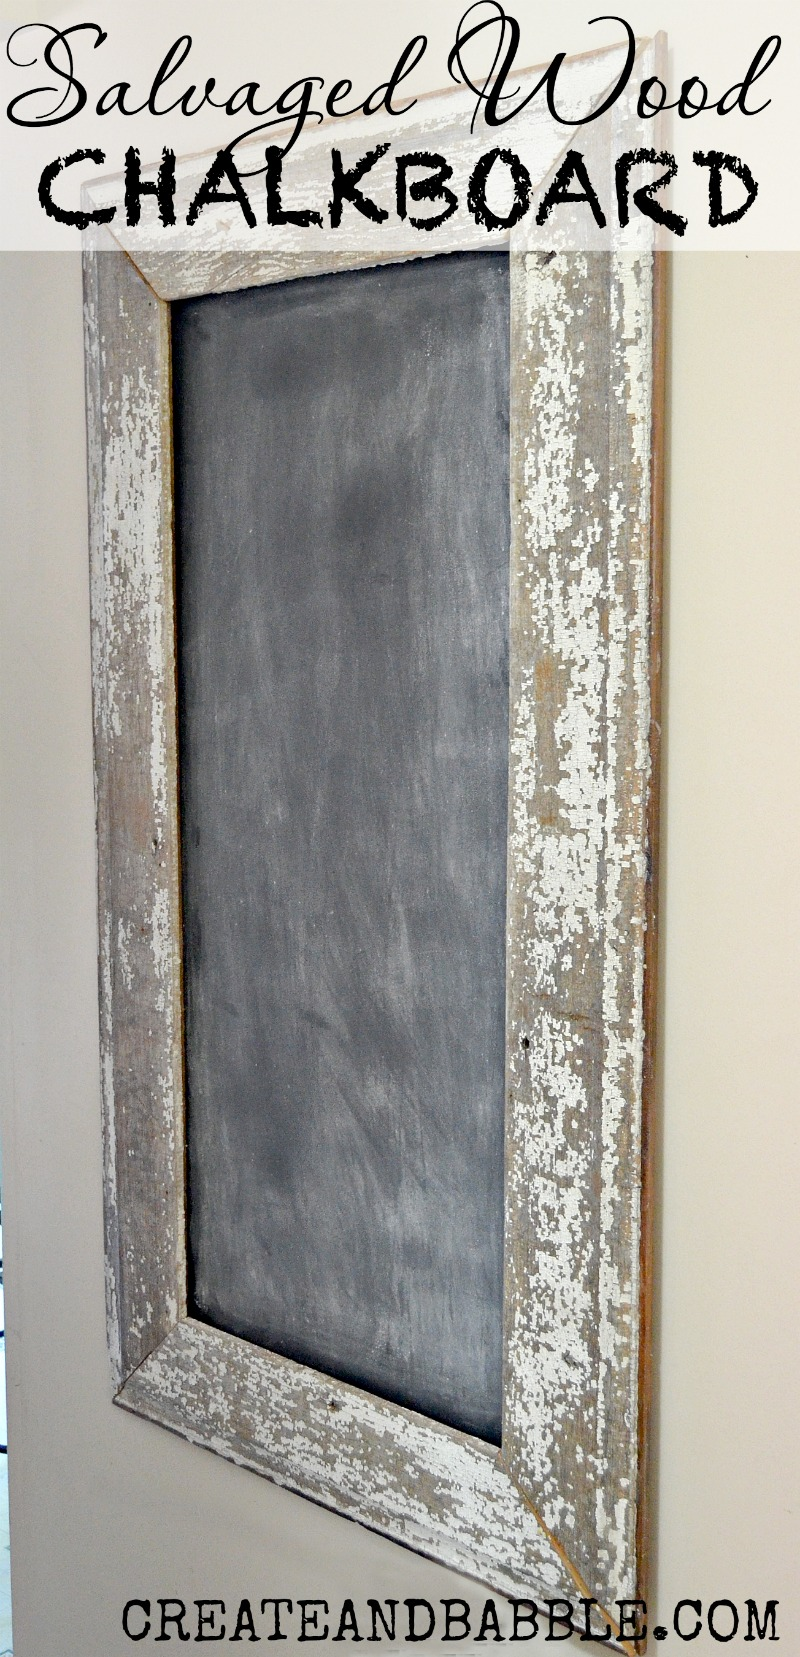 Salvaged wood chalkboard